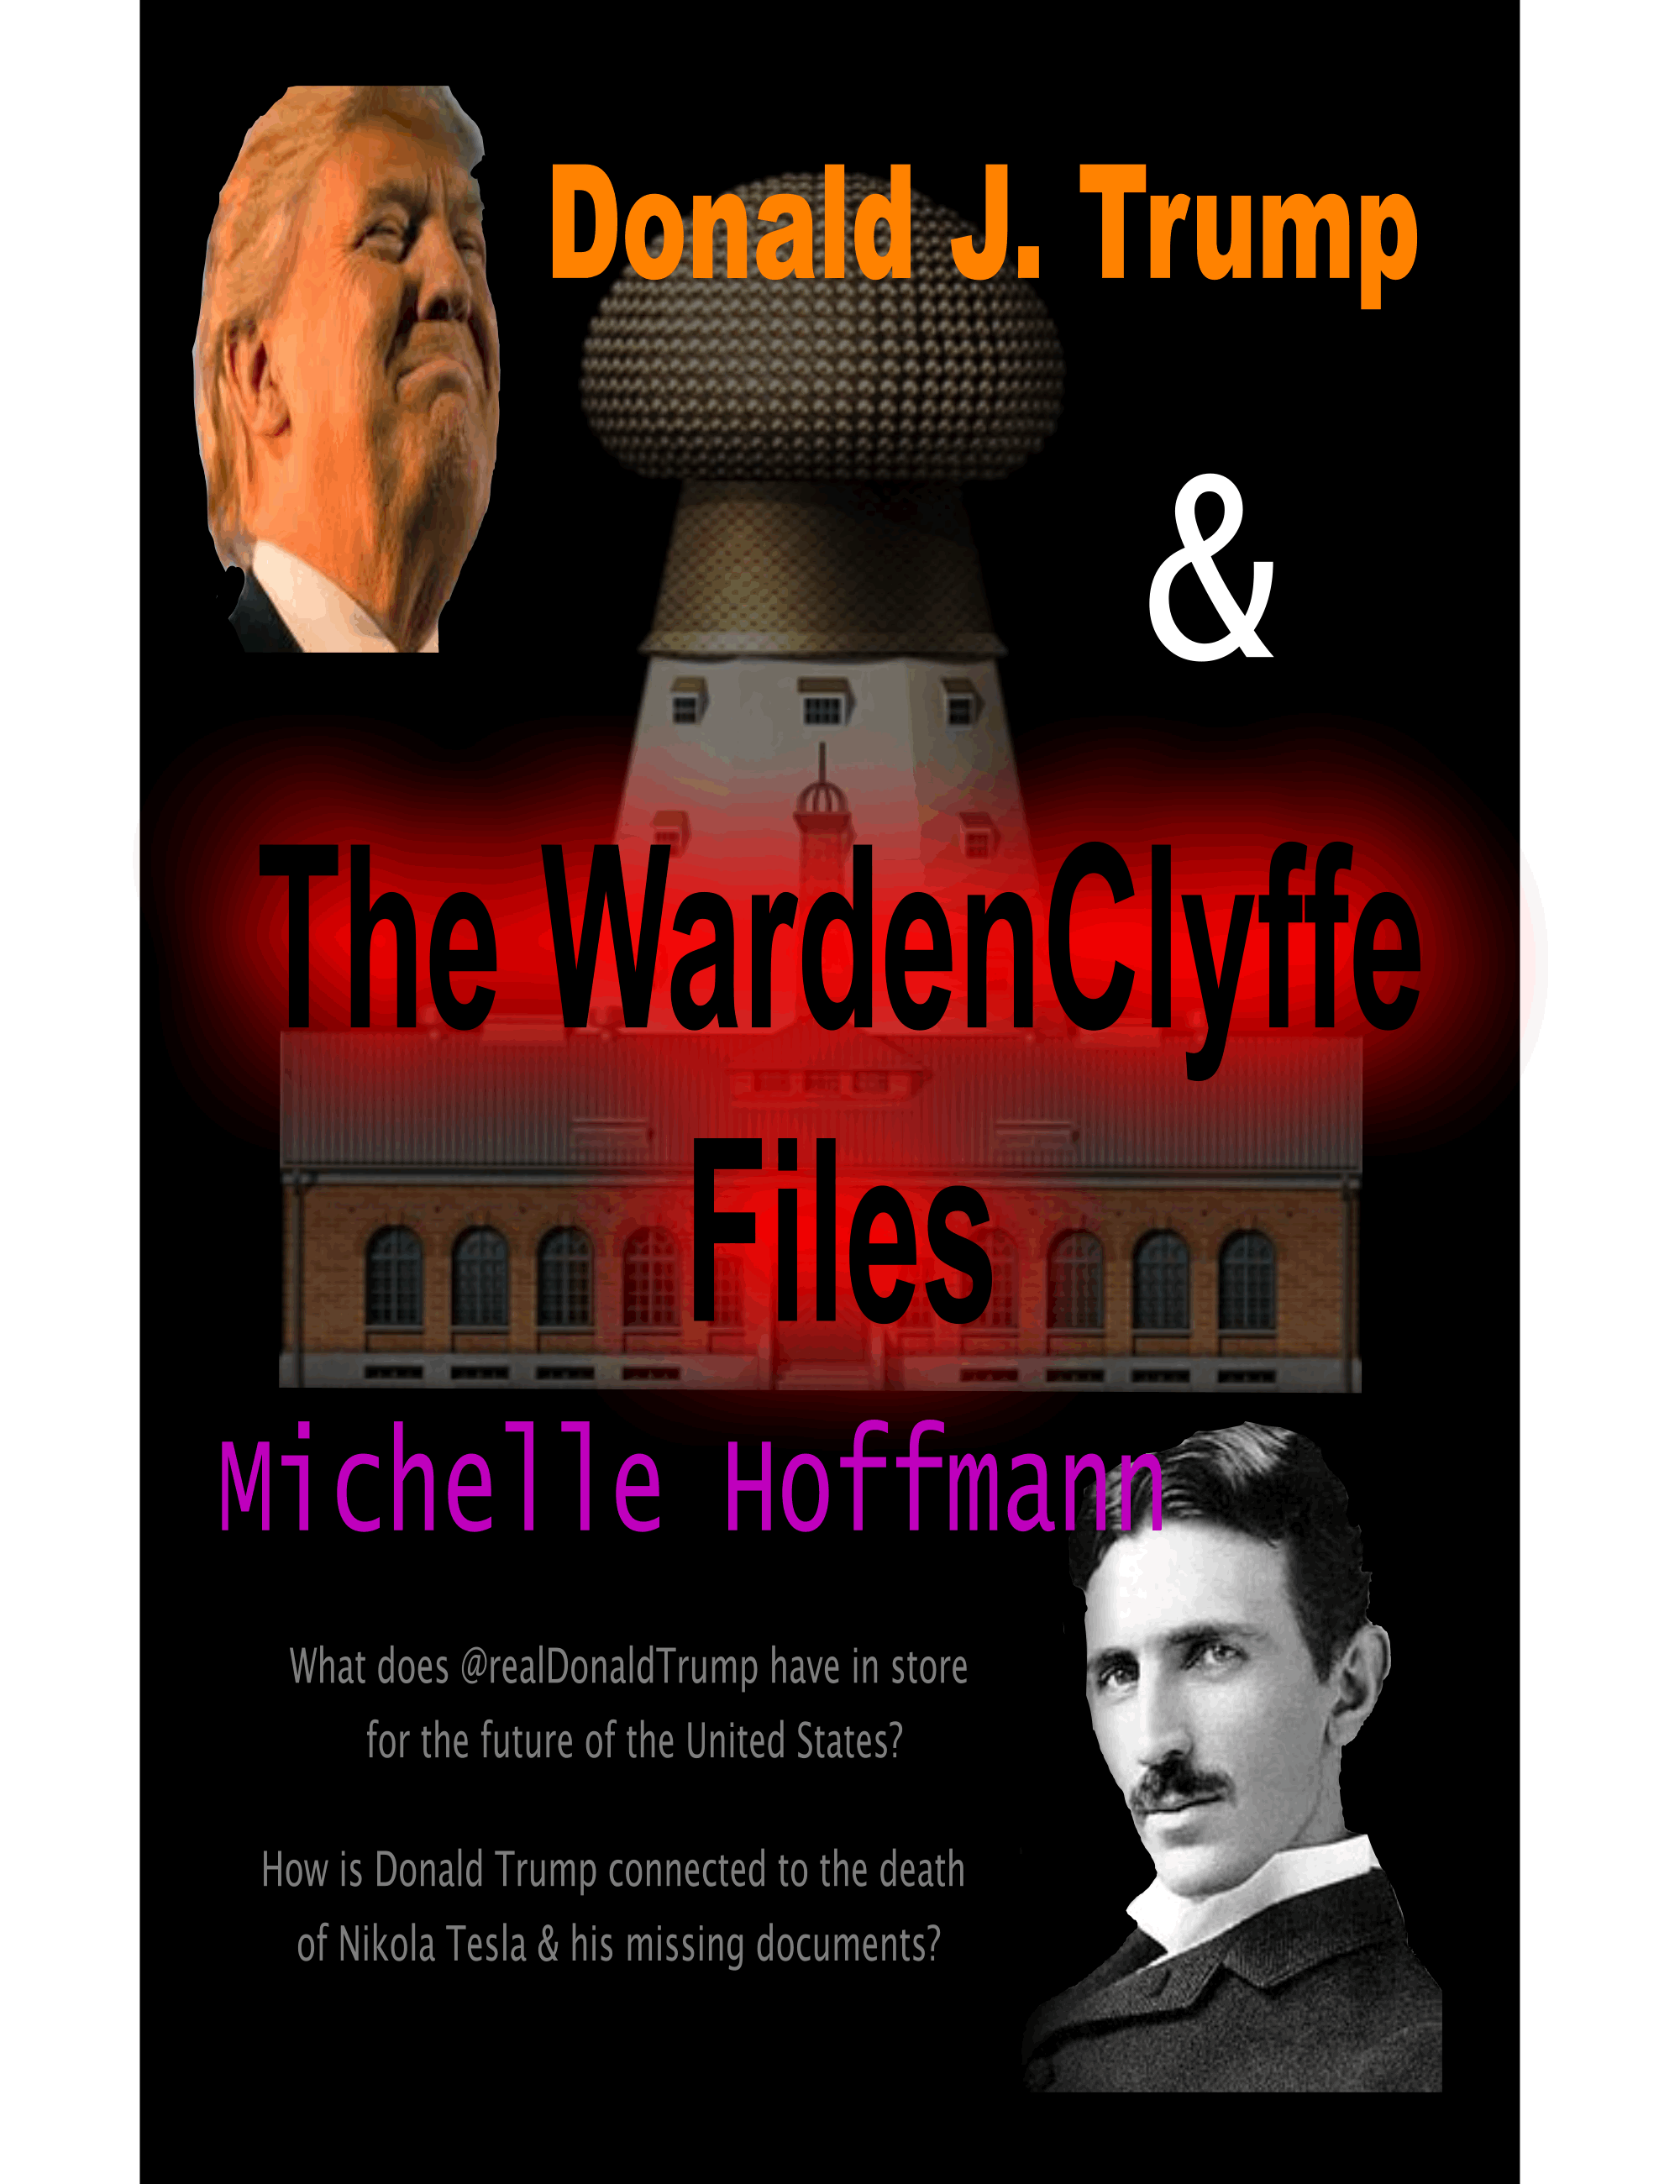 Donald J. Trump & The WardenClyffe Files